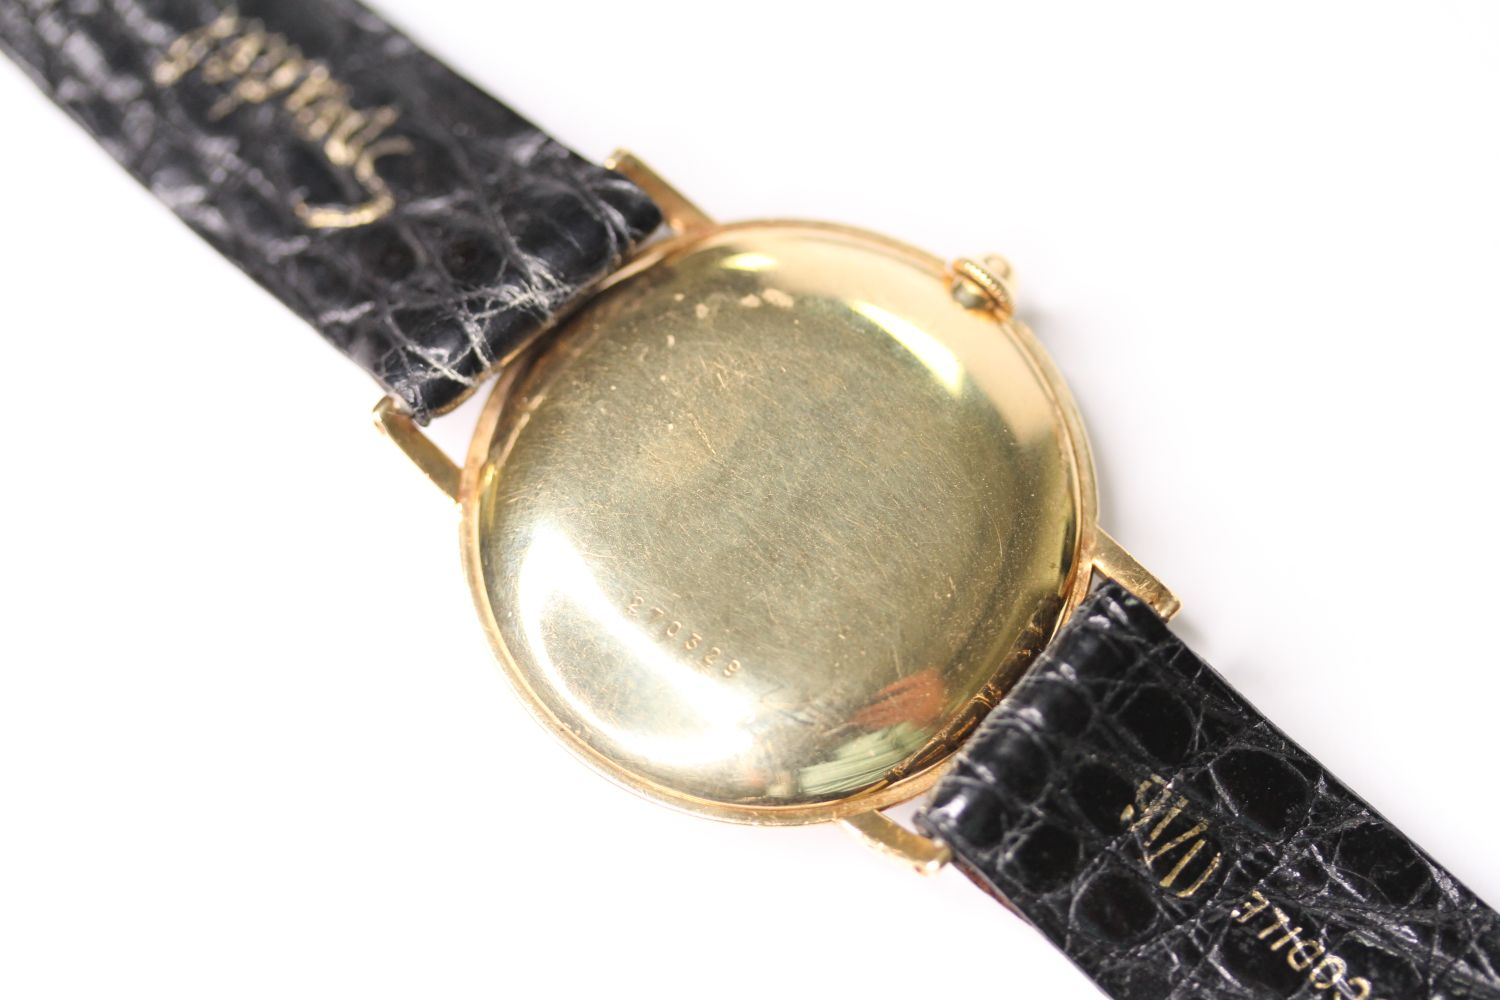 VINTAGE ROLEX OVERSIZE WRISTWATCH CIRCA 1940s, circular silver dial with roman numerals and dot hour - Image 3 of 5